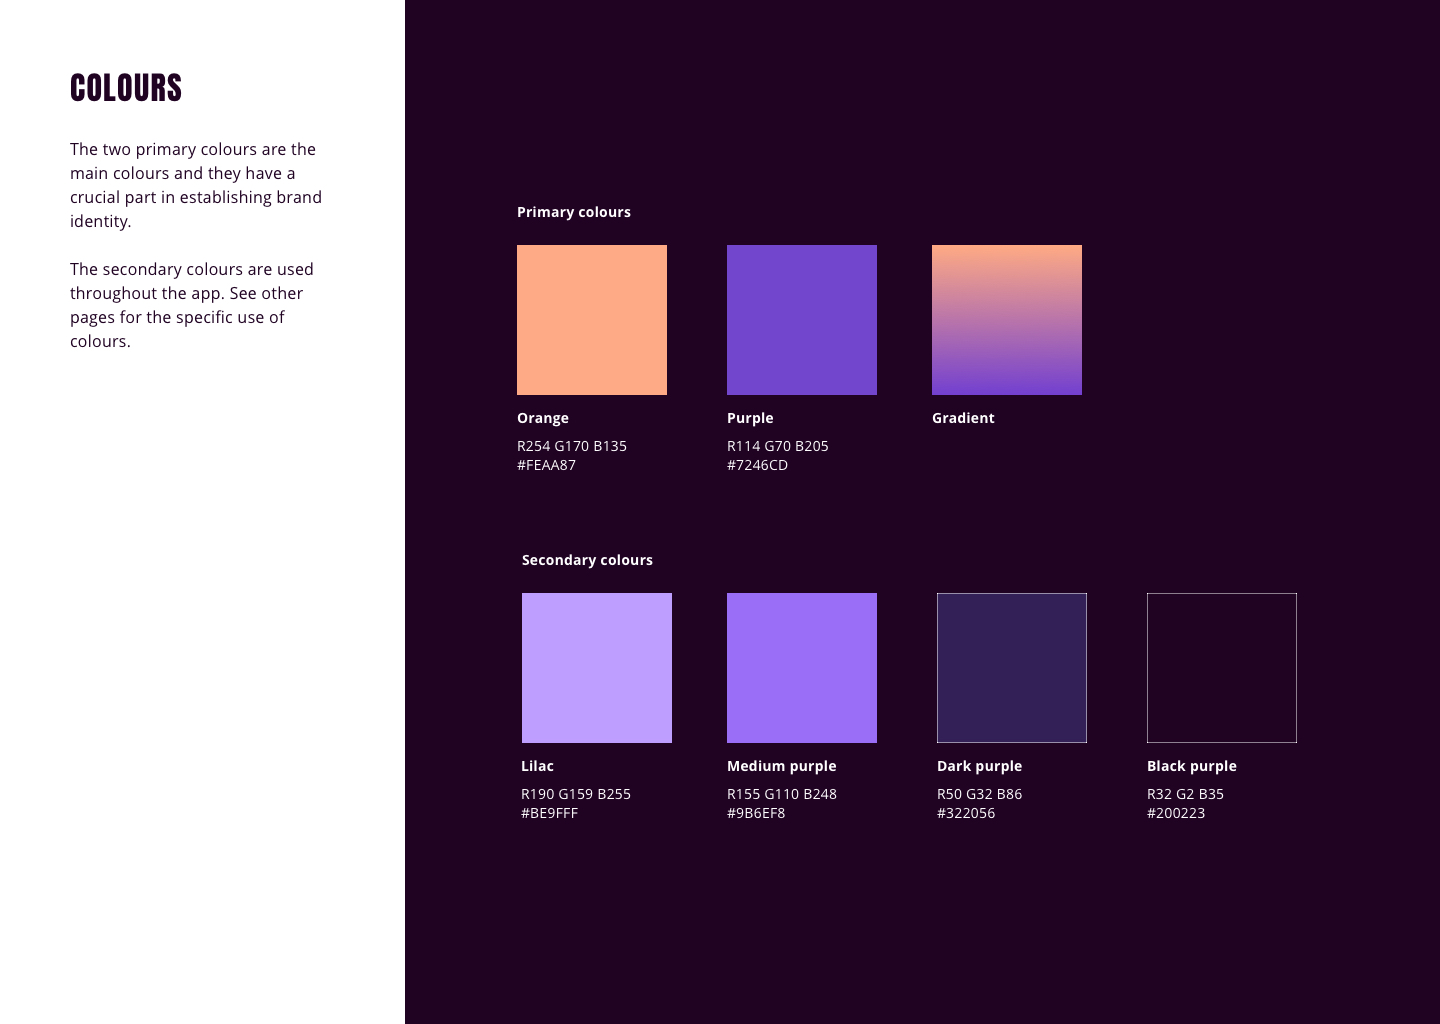 Styleguide P7 Colours@1